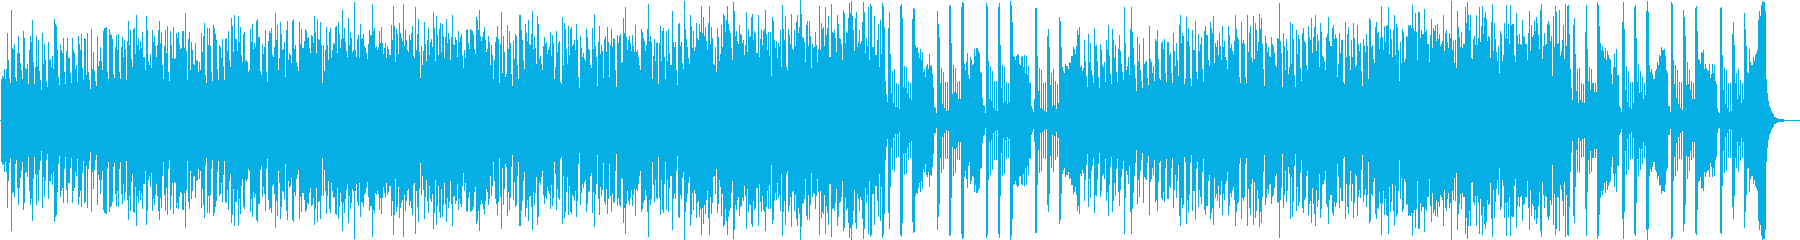 Comical and warm theme park style stage music's reproduced waveform